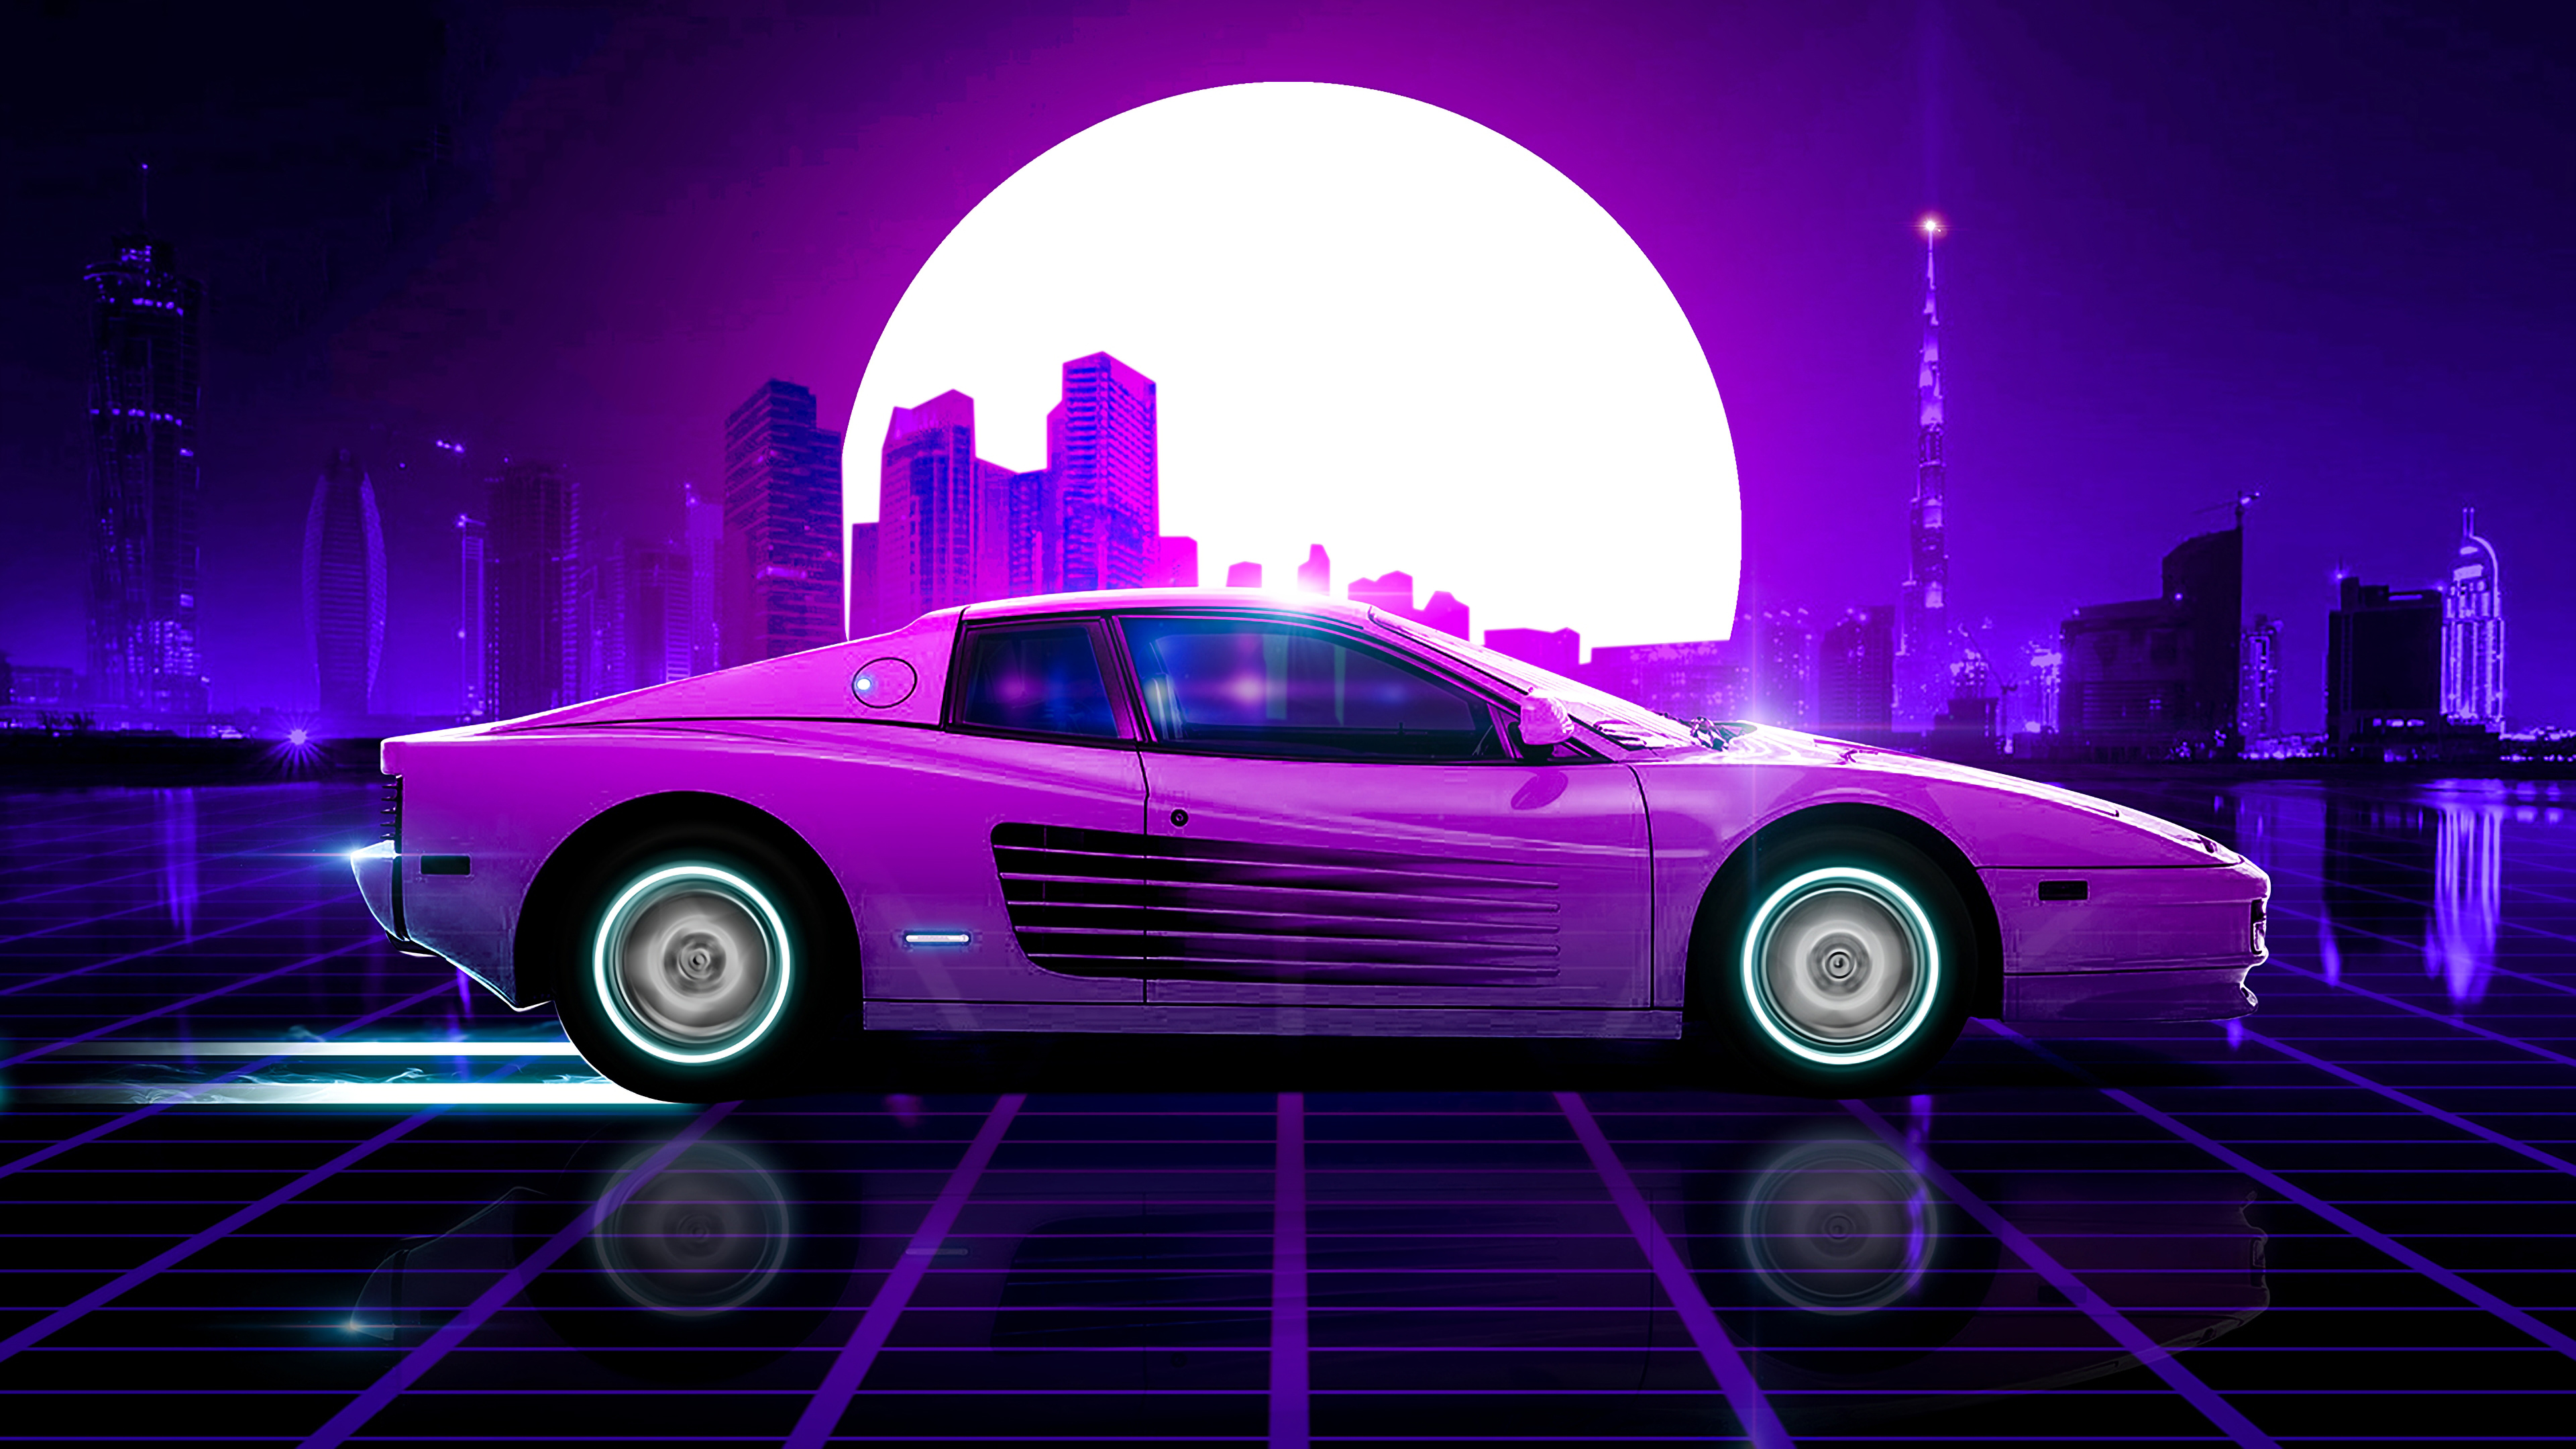 Ferrari Synthwave 4k, HD Cars, 4k Wallpapers, Images ...